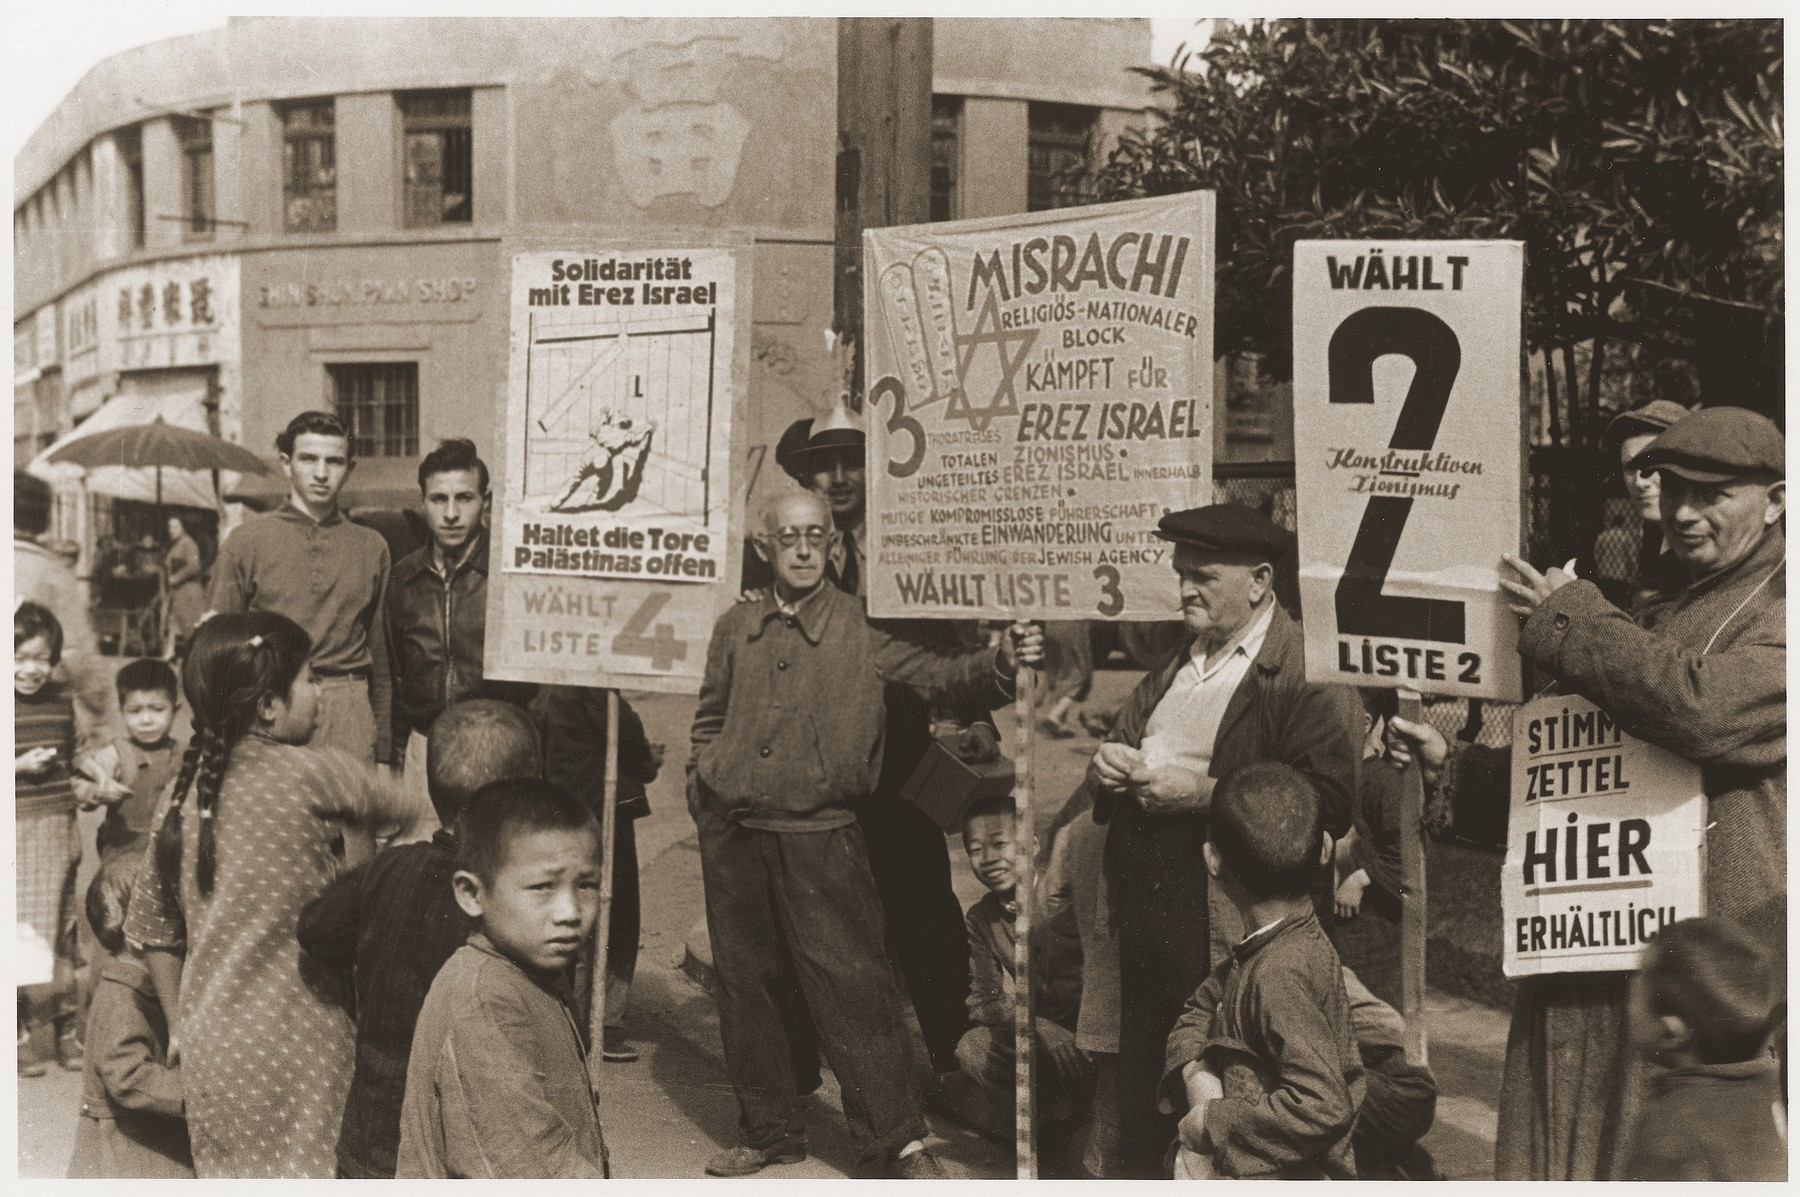 Jewish refugees hold up signs in German during an electoral campaign for an unidentified Zionist representative body.